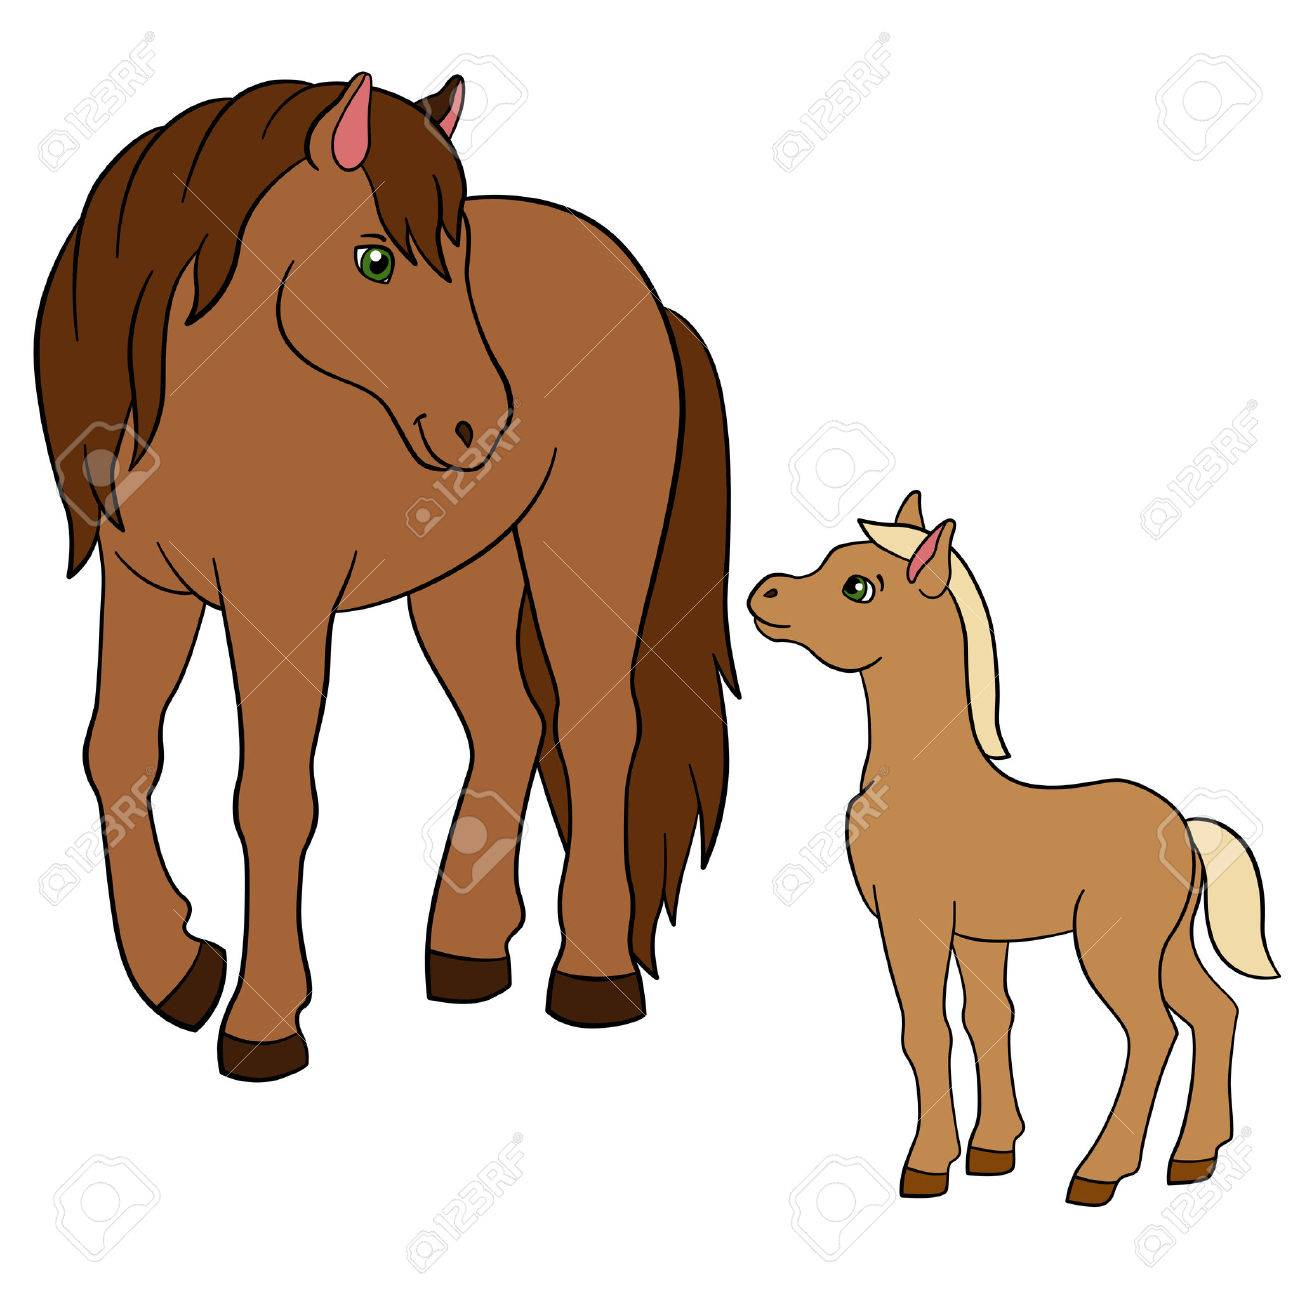 Horse tail clipart graphic stock Horse tail clipart 4 » Clipart Station graphic stock